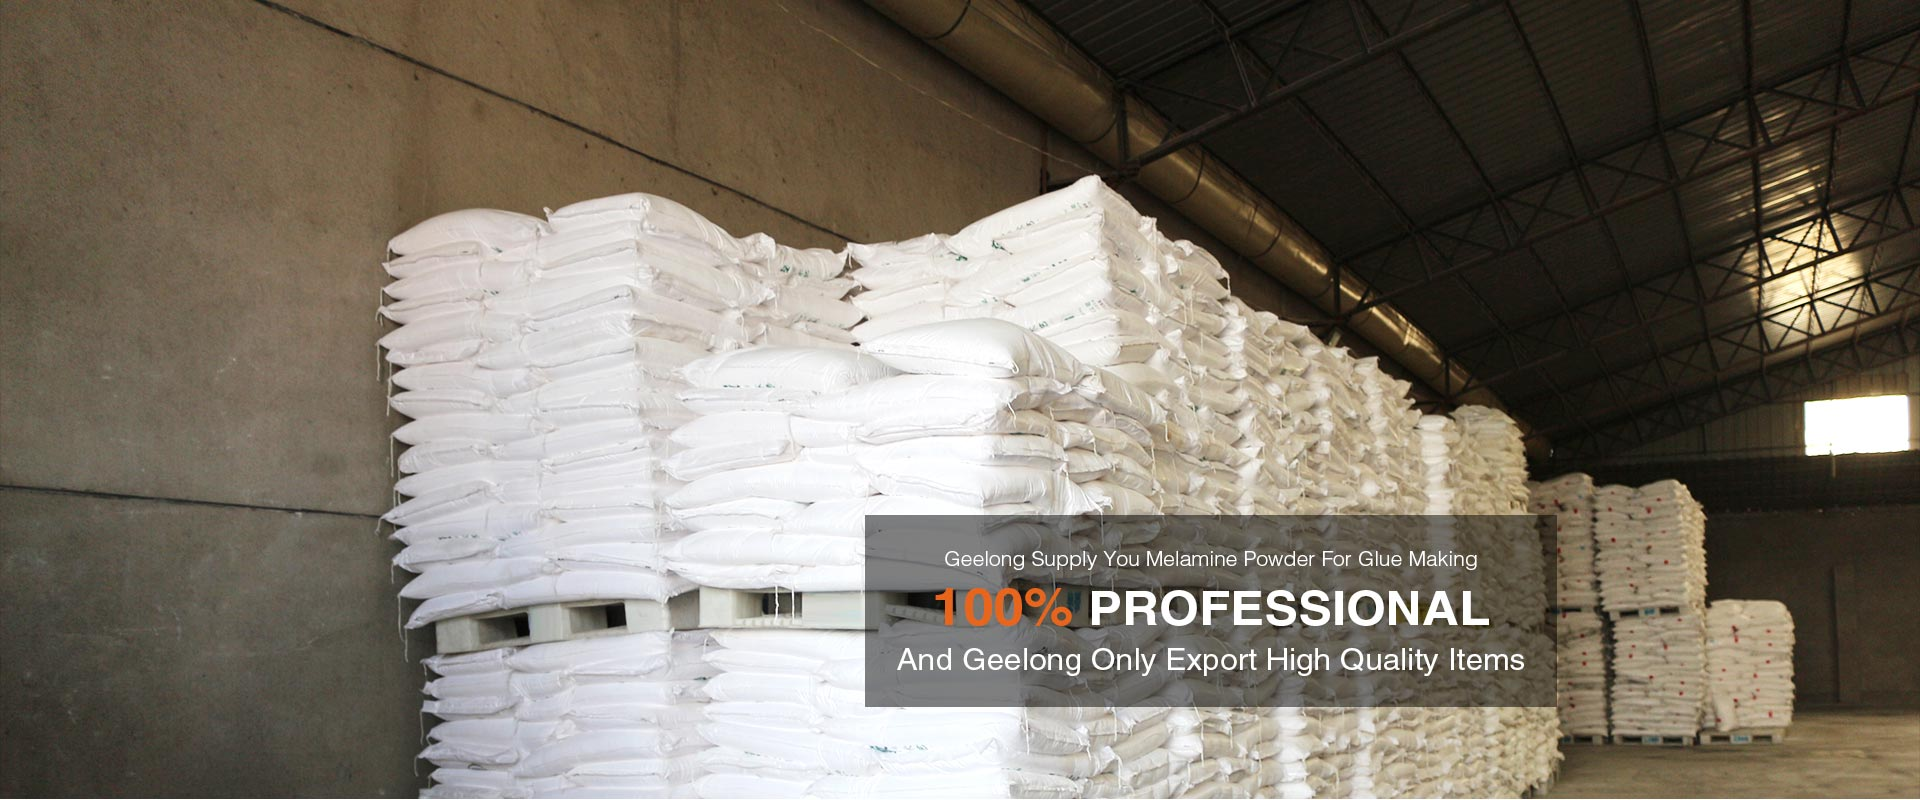 Geelong Supply Melamine Powder for Glue Making